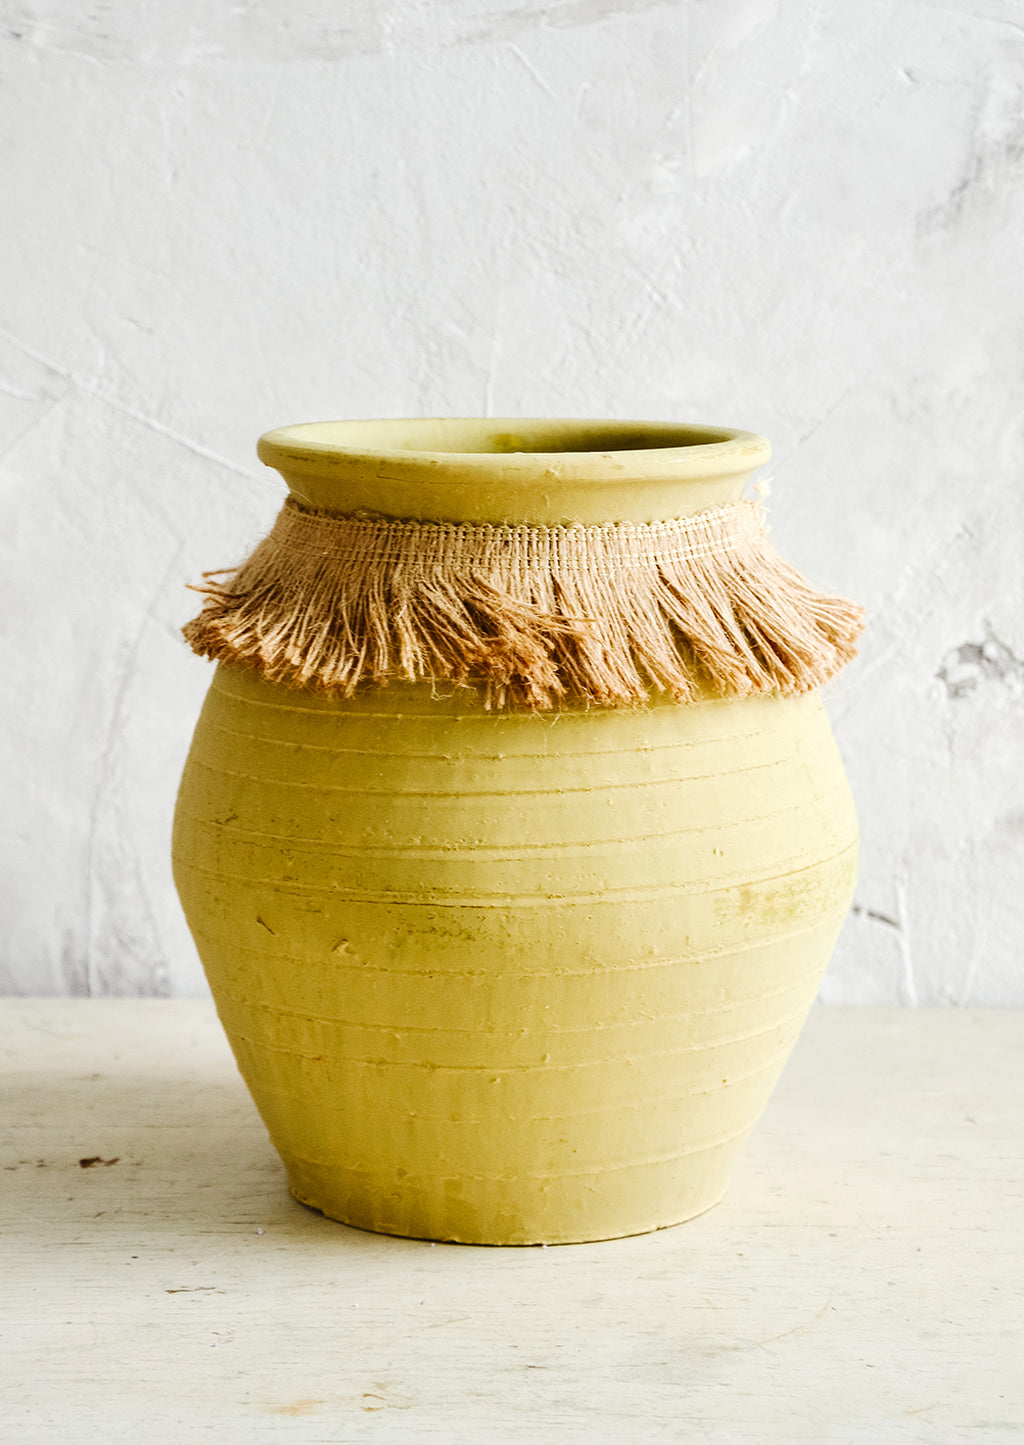 Large: Tall, ochre colored clay vase with fringed jute trim around opening